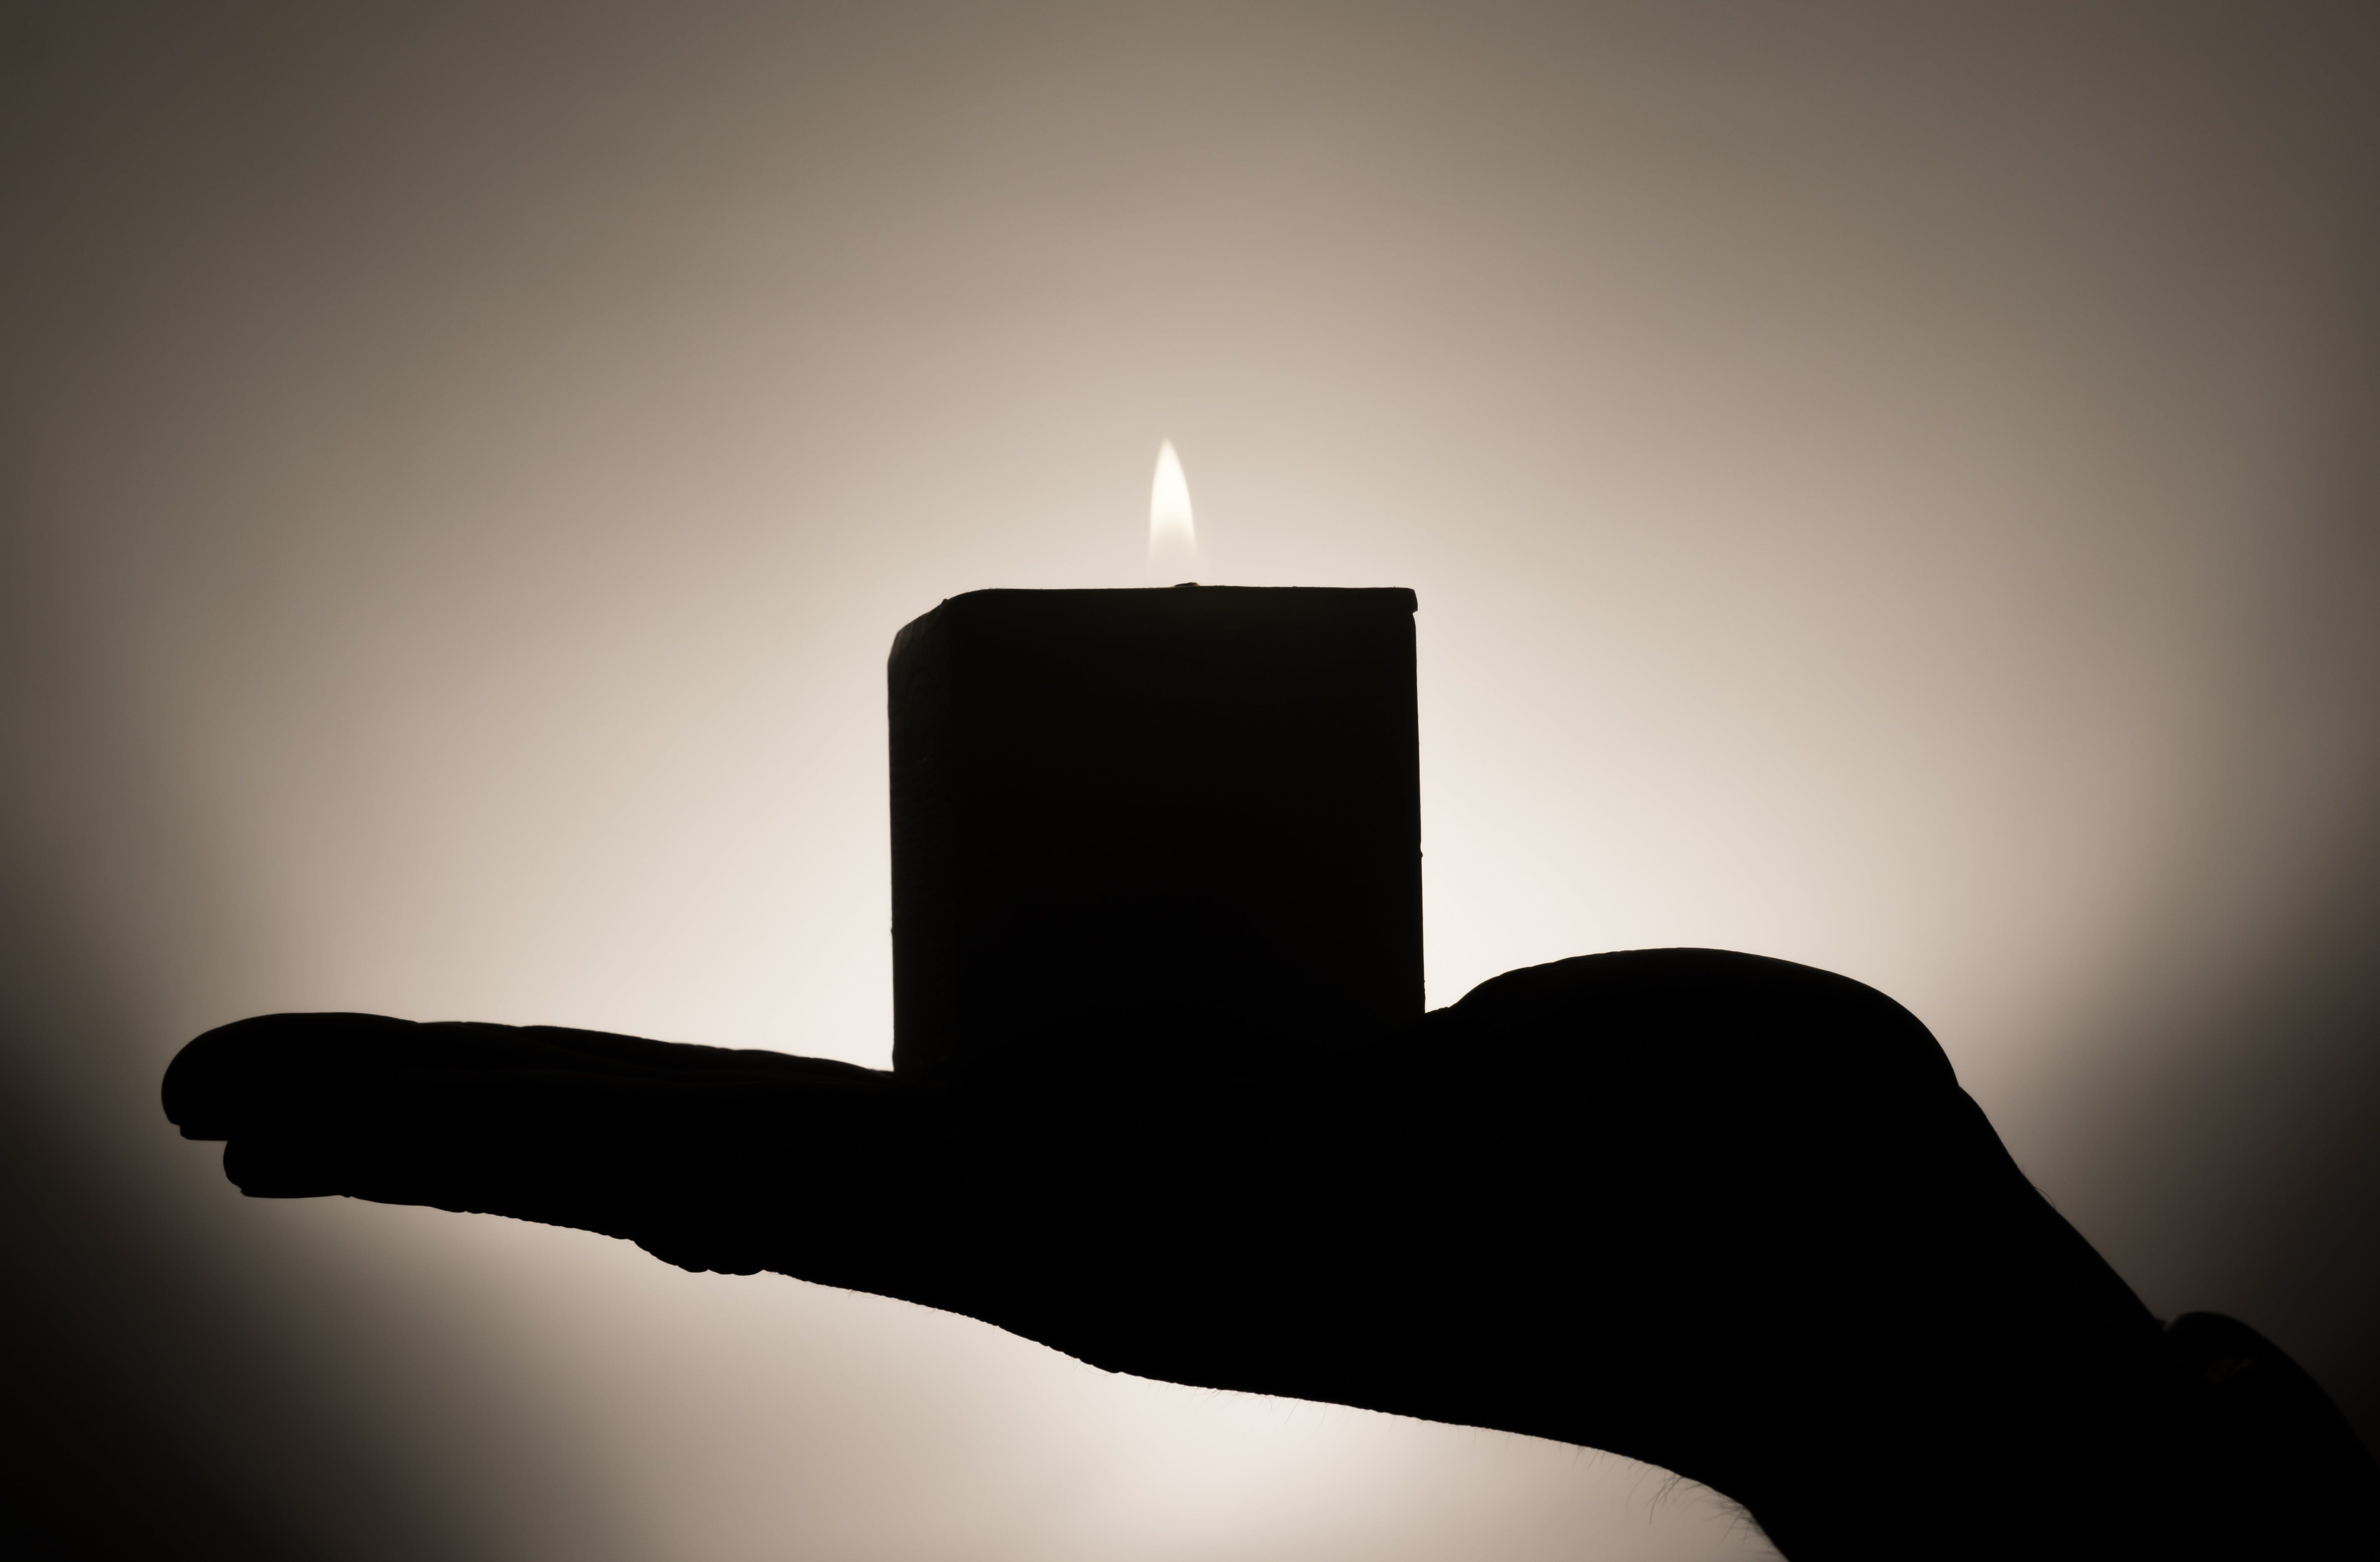 Free stock photo of hand, rest, shadow, candle